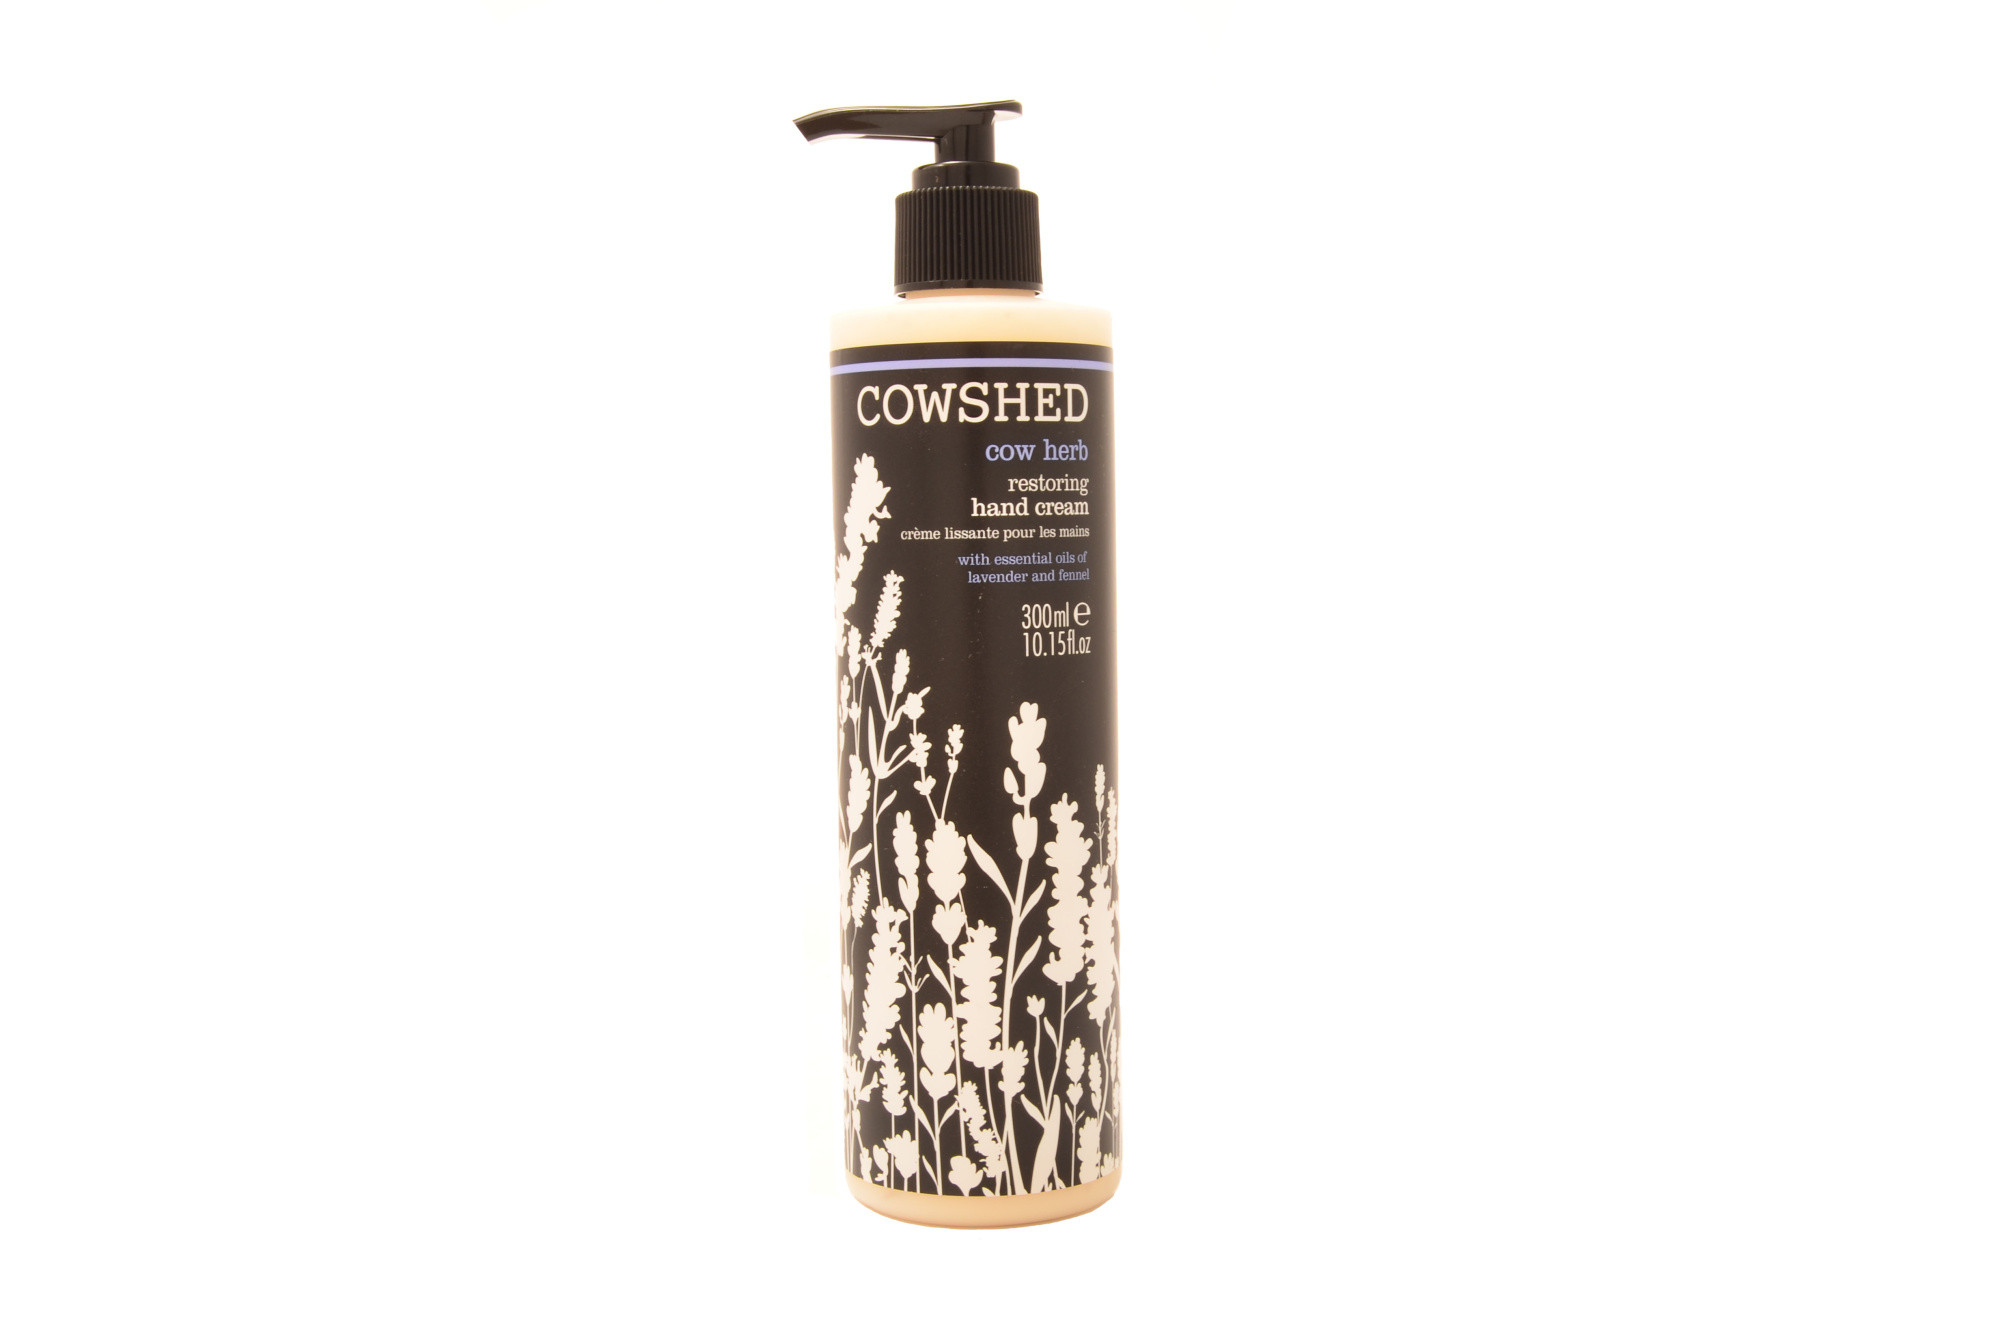 Cowshed Cow Herb Hand Cream